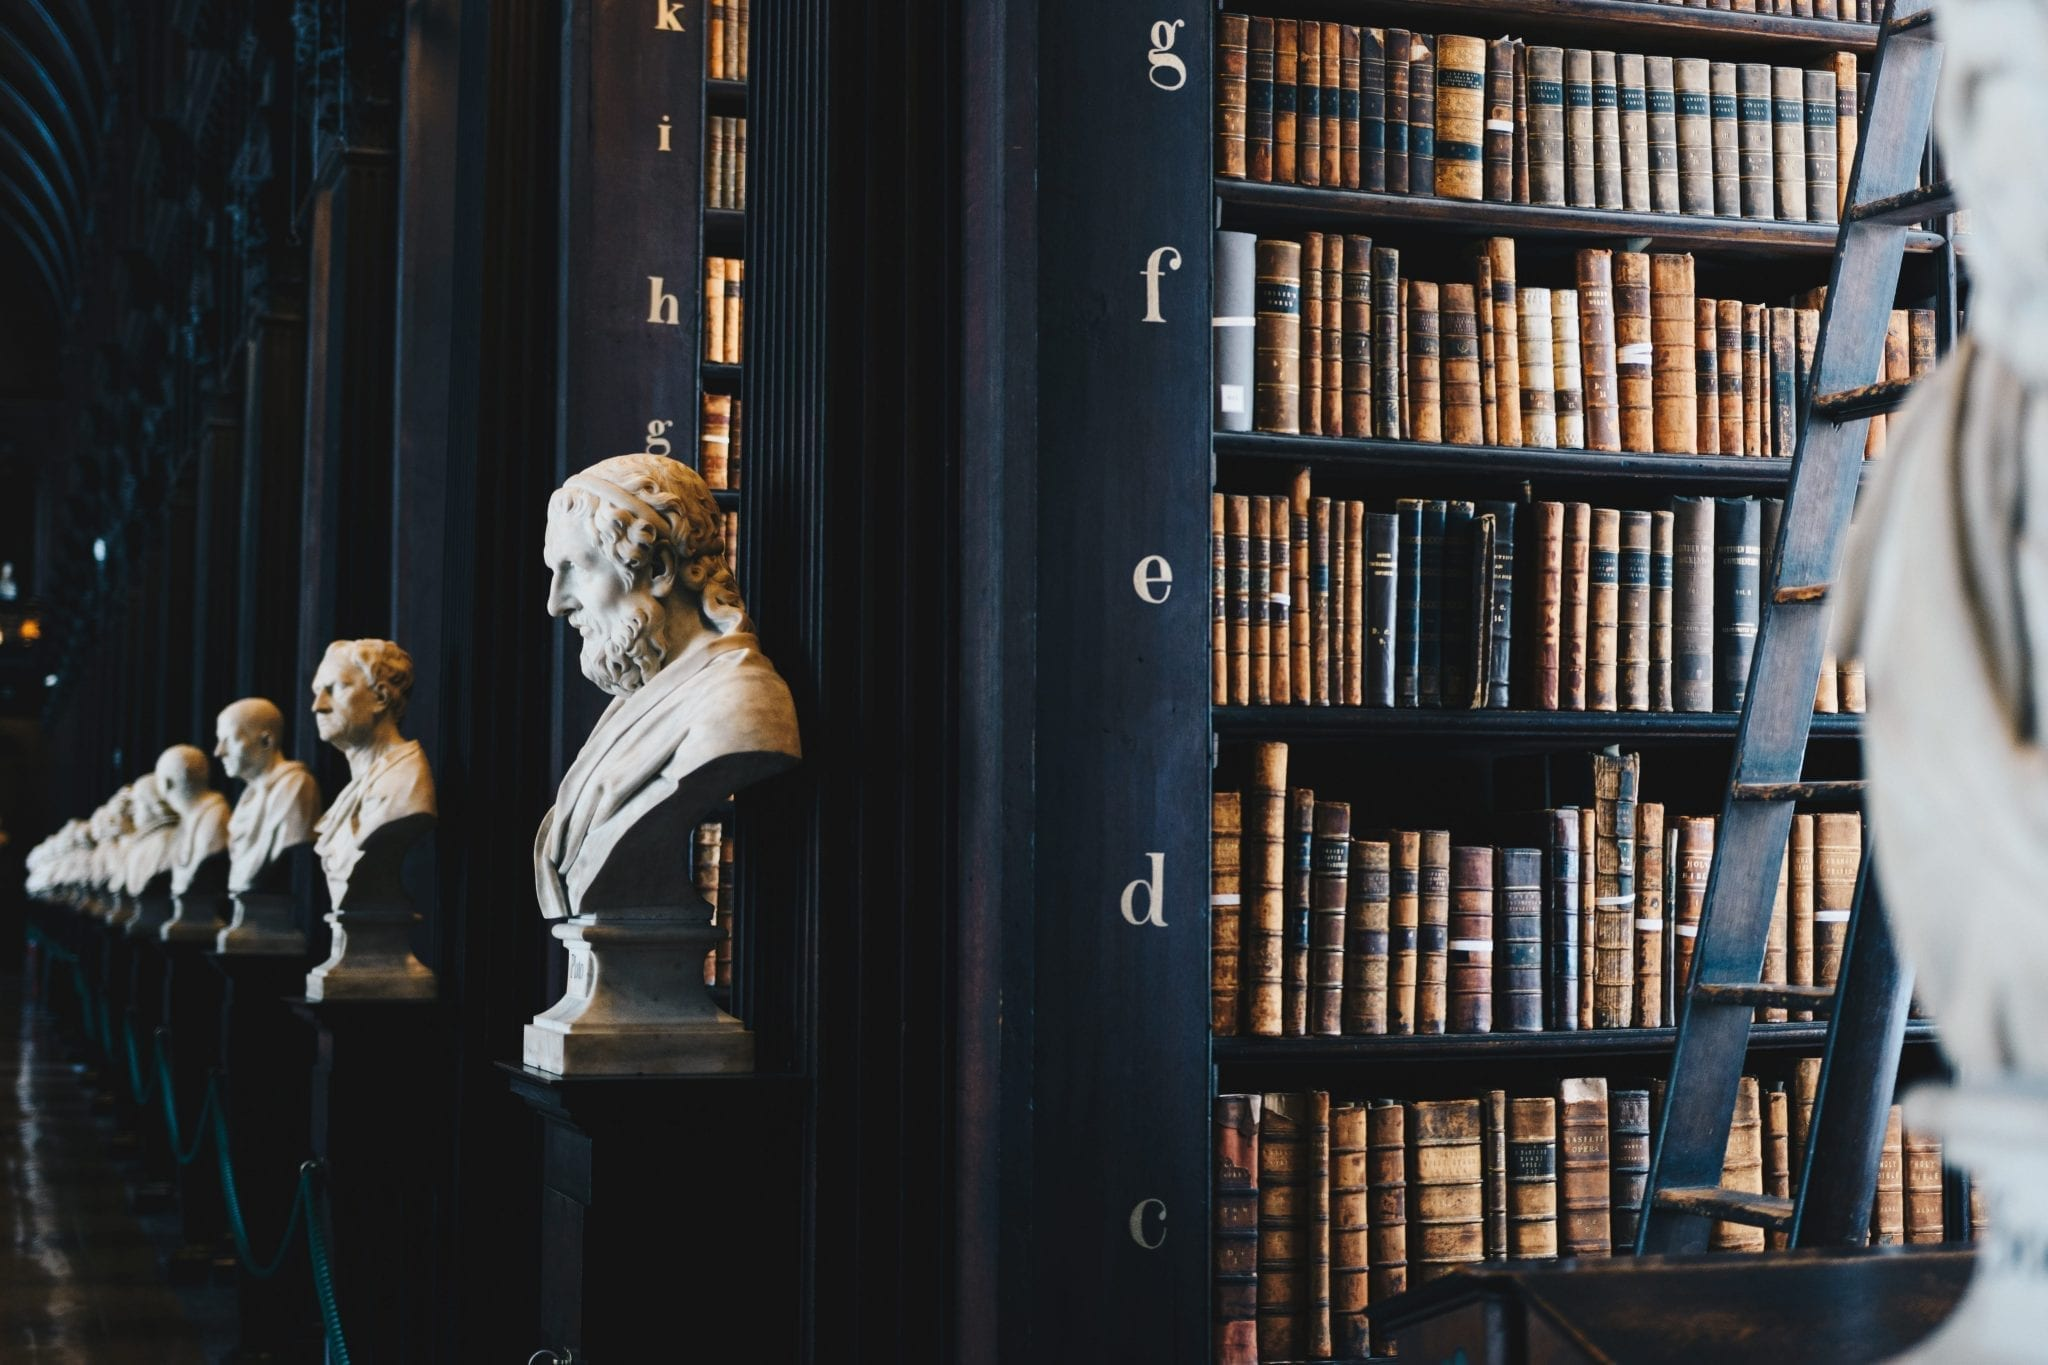 Library with various historical busts; image by Giammarco Boscaro, via Unsplash.com.